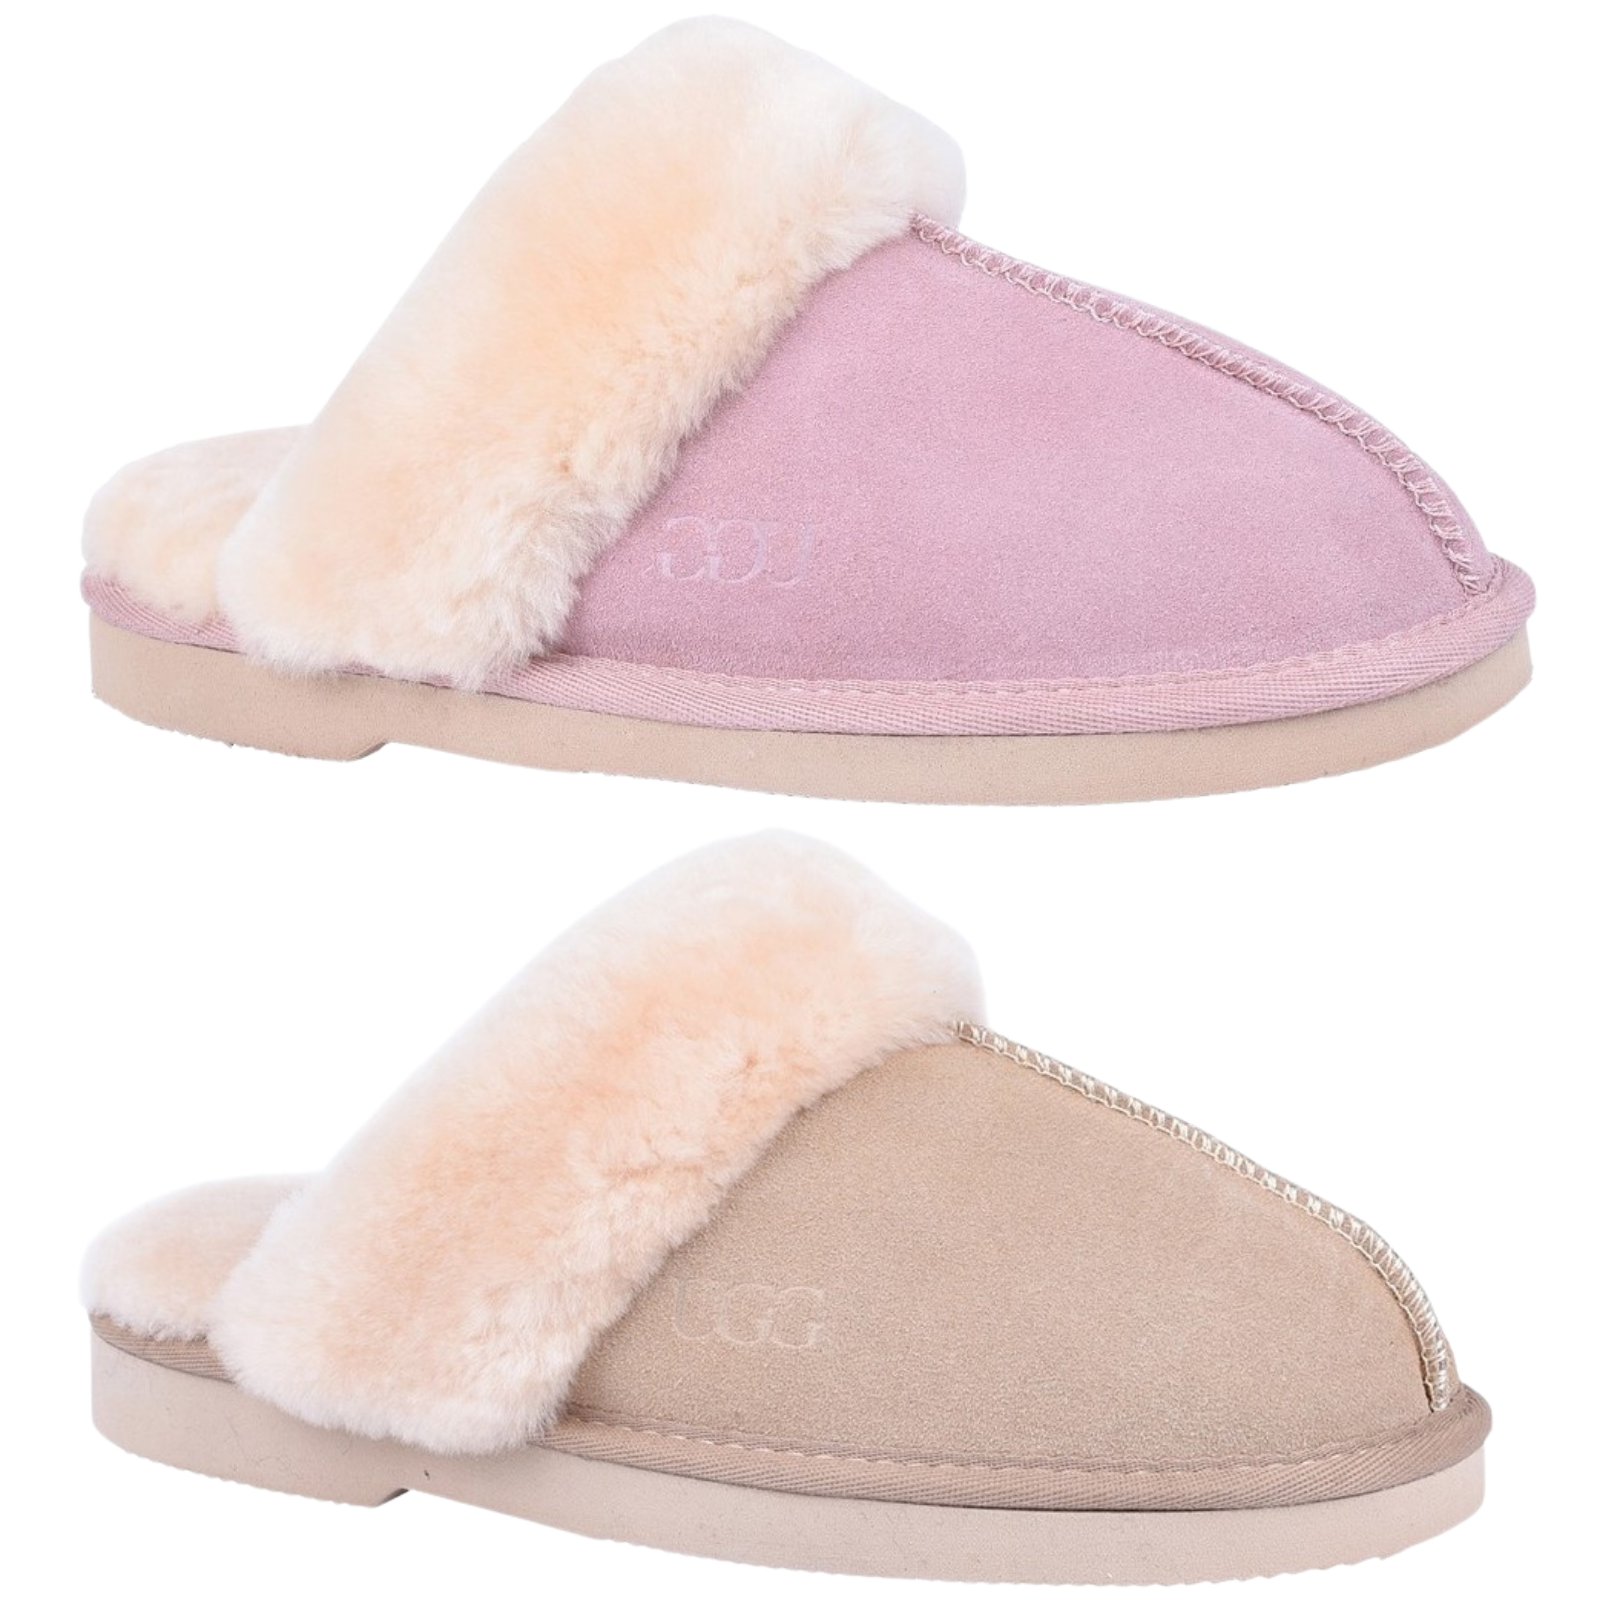 0f3021532a3 GROSBY Doe Women's Moccasin Sheepskin Slipper UGG Scuff Slip On Moccasins  Ladies